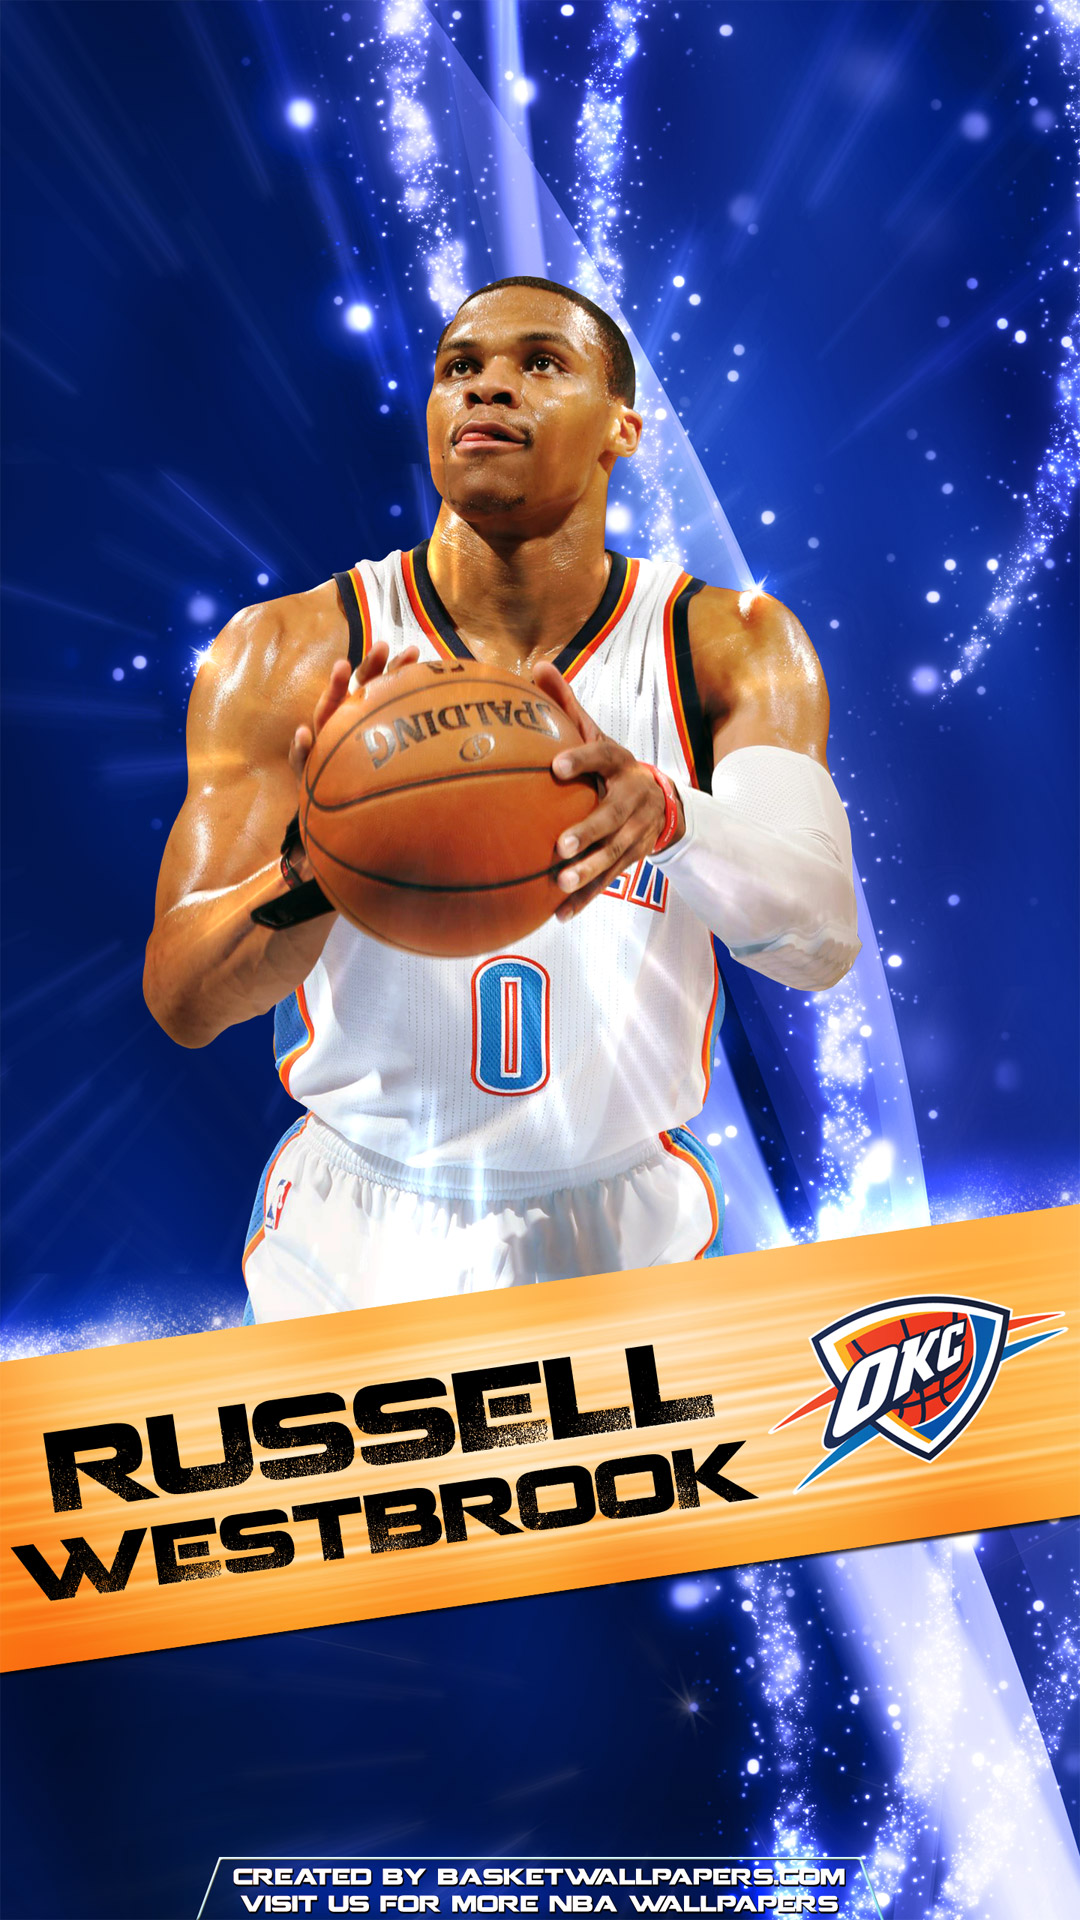 Los Angeles Wallpaper Iphone 6 Plus Russell Westbrook Okc Thunder 2016 Mobile Wallpaper